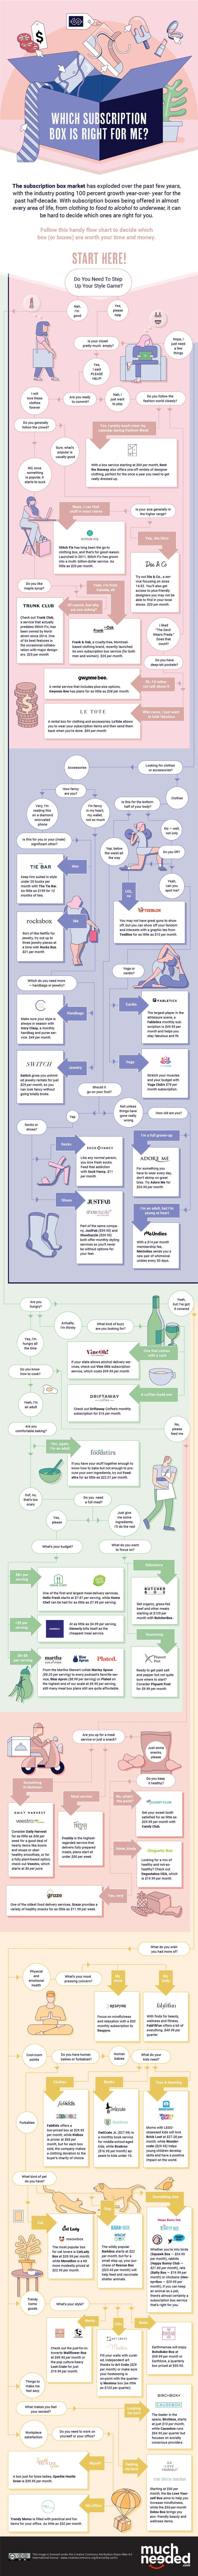 Which-Subscription-Box-Is-Right-For-Me-Infographic-min